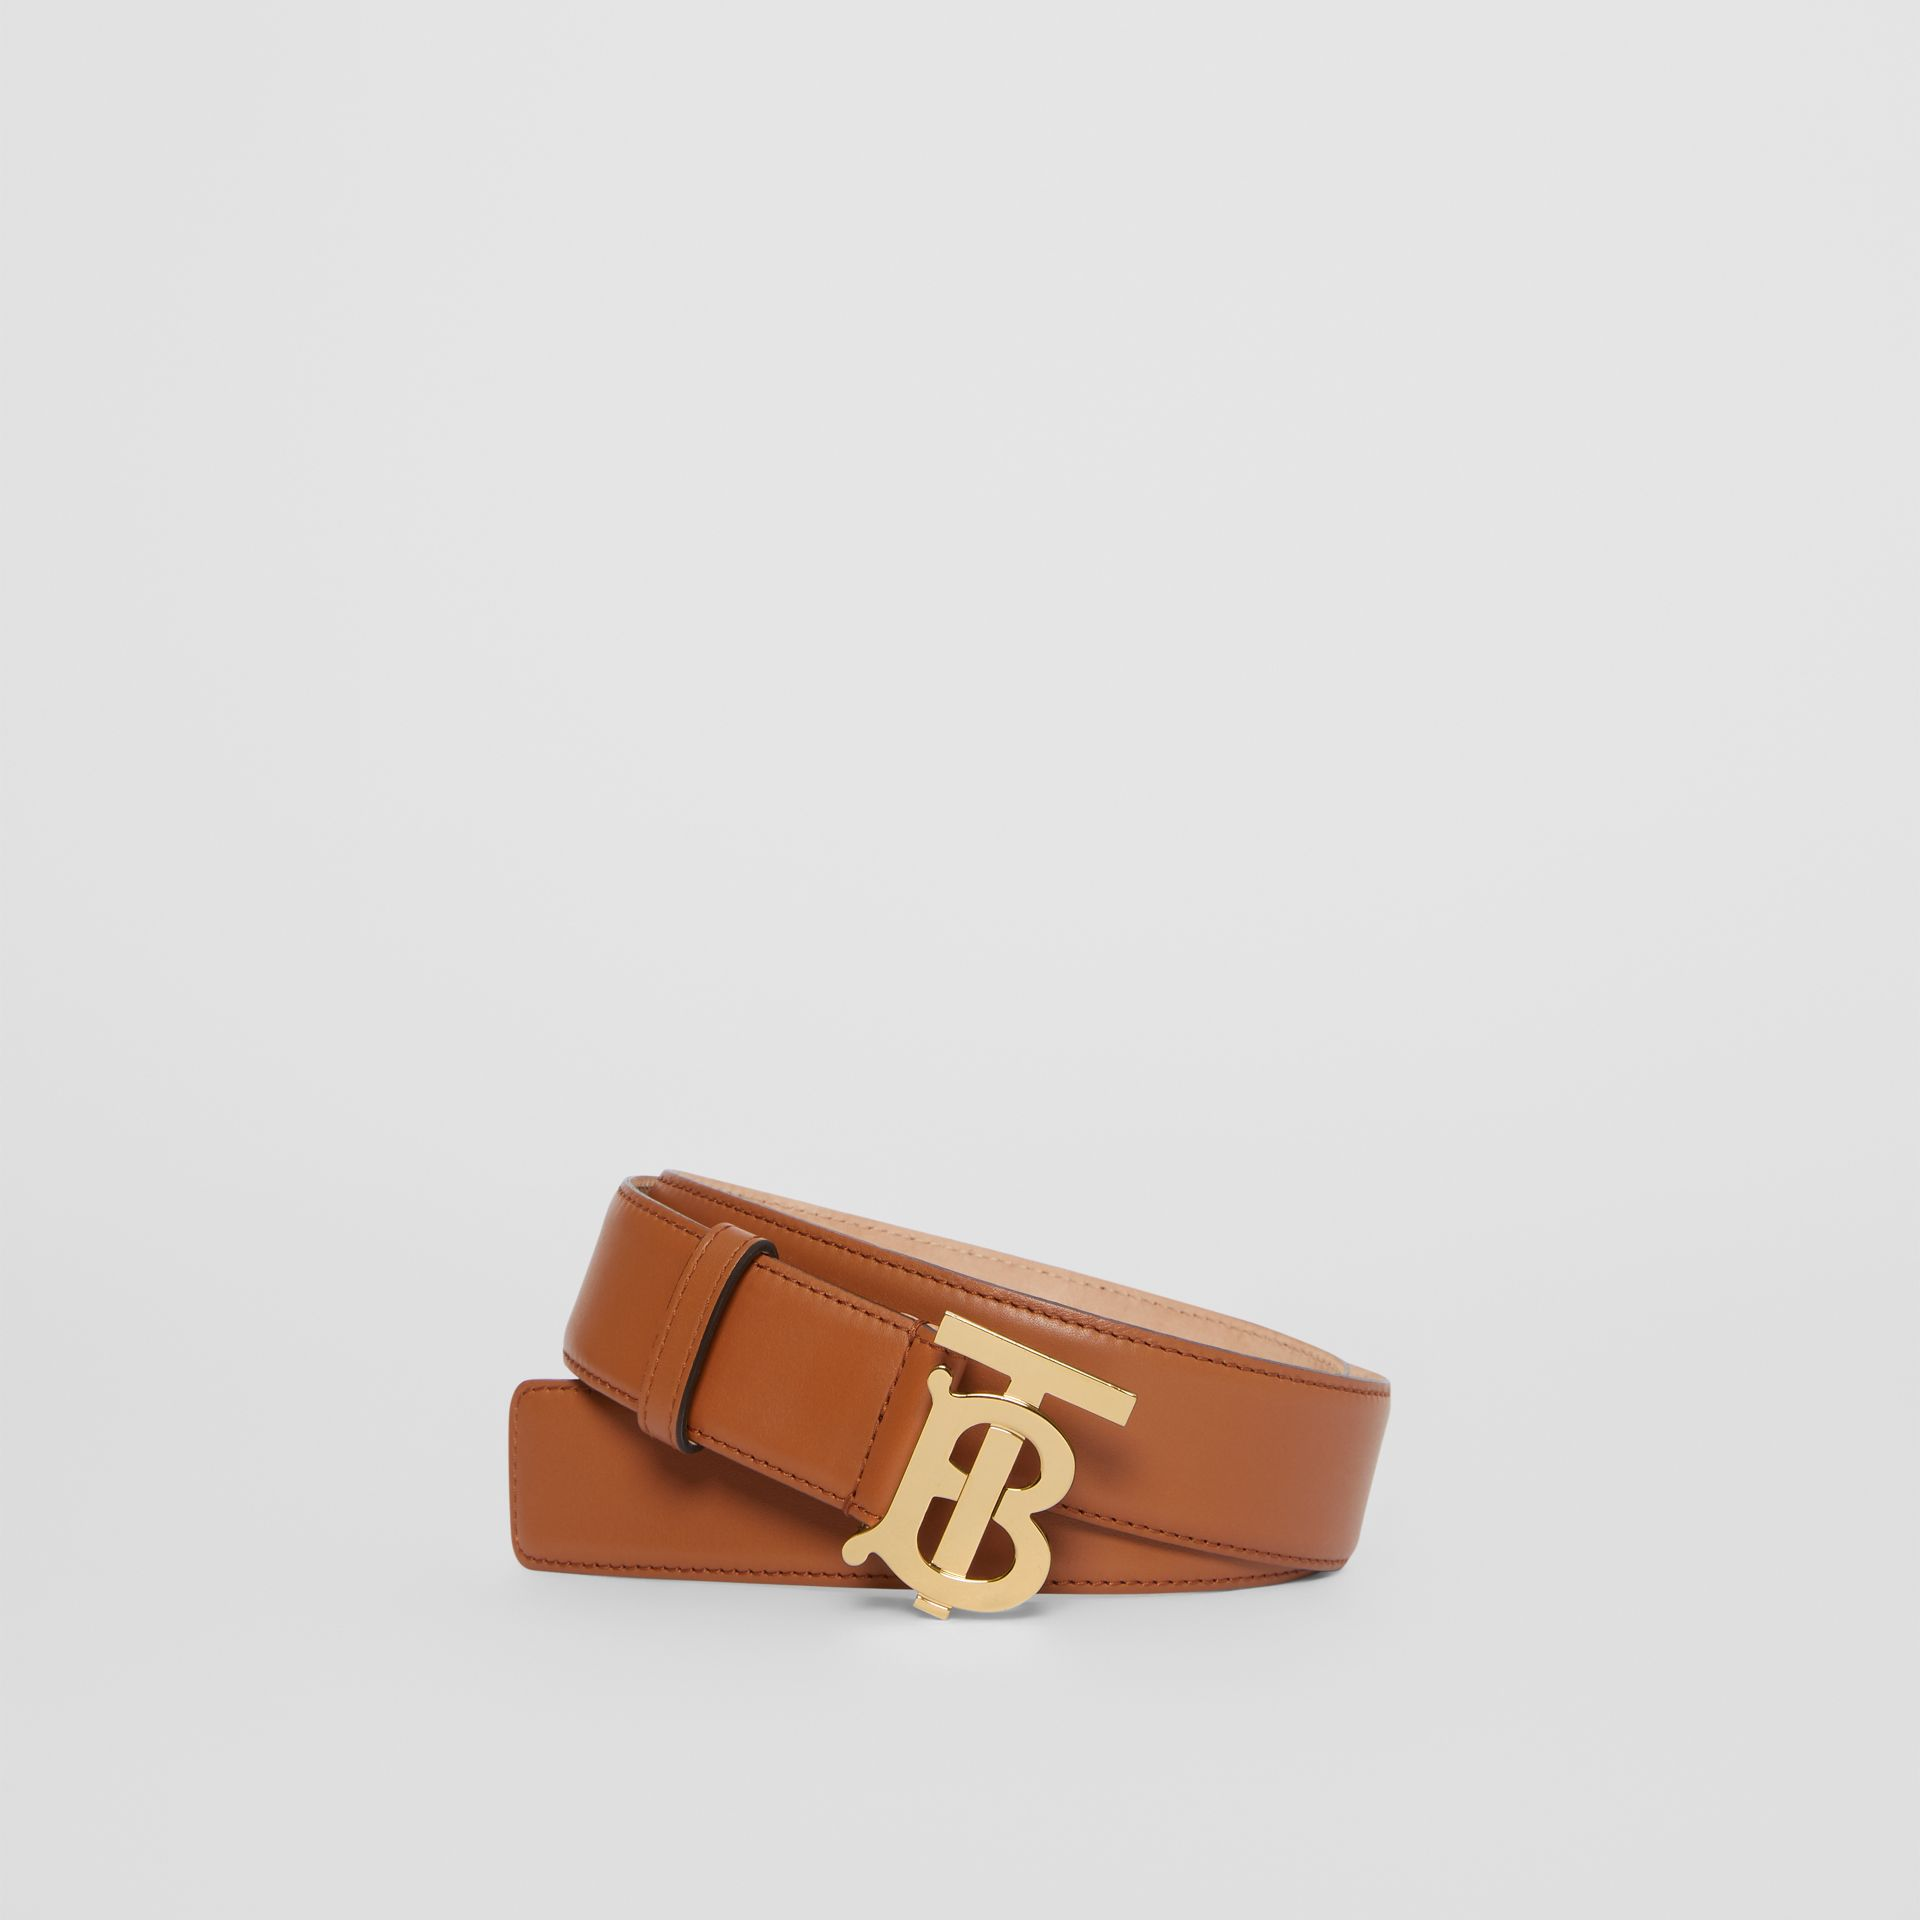 Monogram Motif Leather Belt in Tan - Women | Burberry United States - gallery image 0